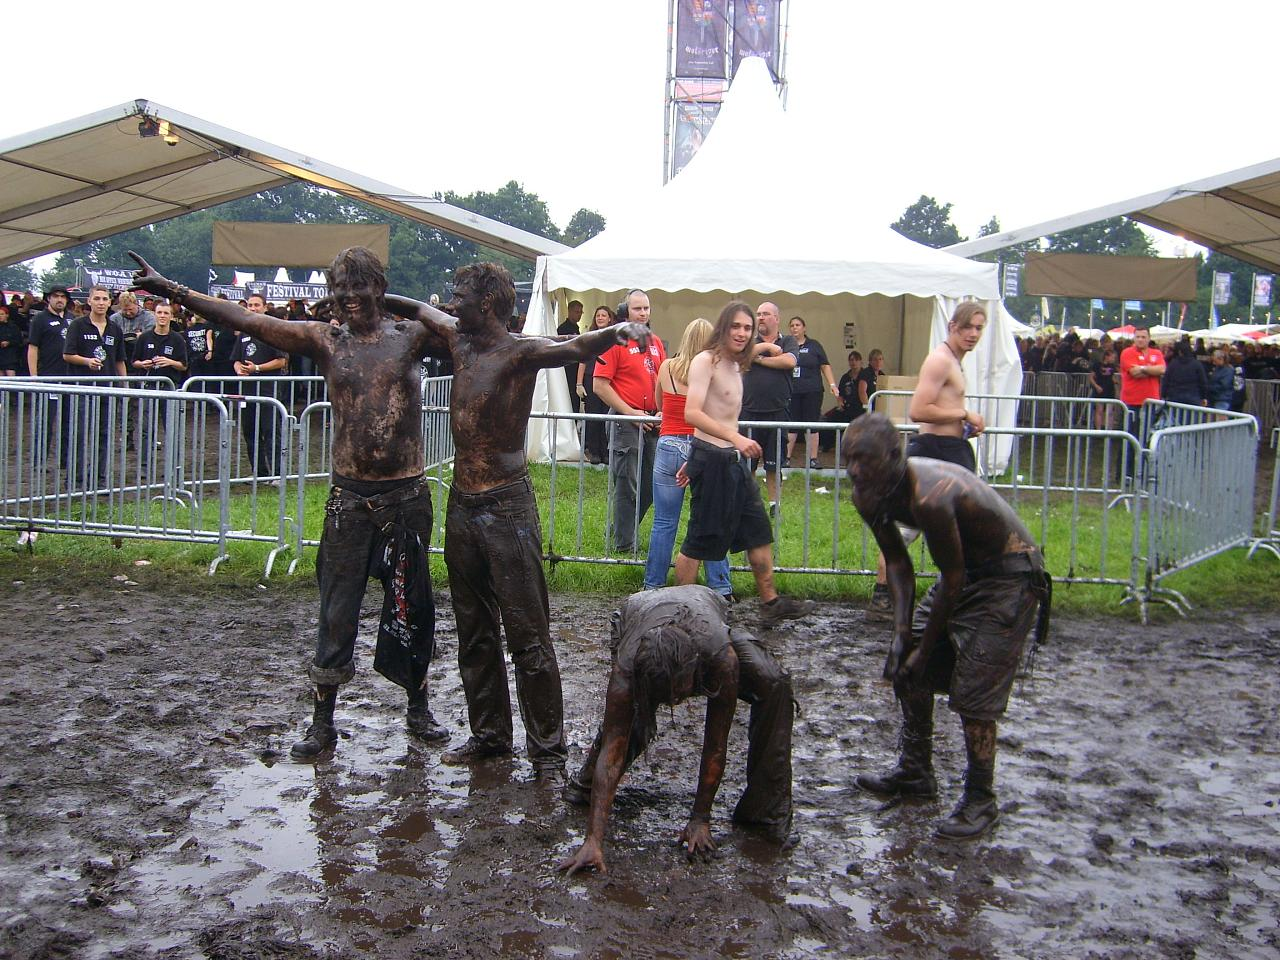 Mud People of Wacken